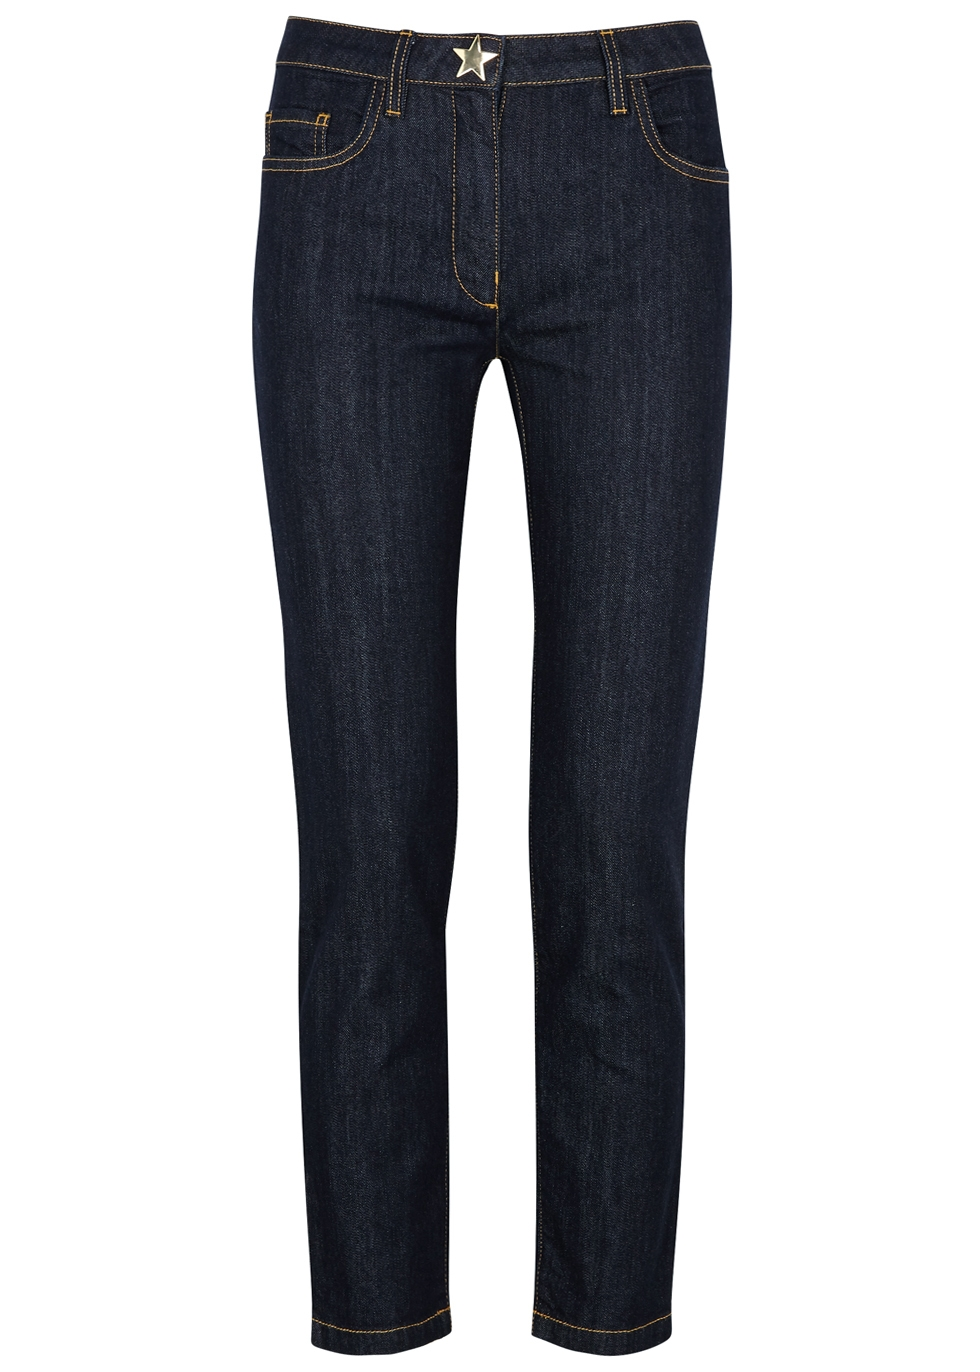 BOUTIQUE MOSCHINO NAVY STAR-PRINT STRAIGHT-LEG JEANS